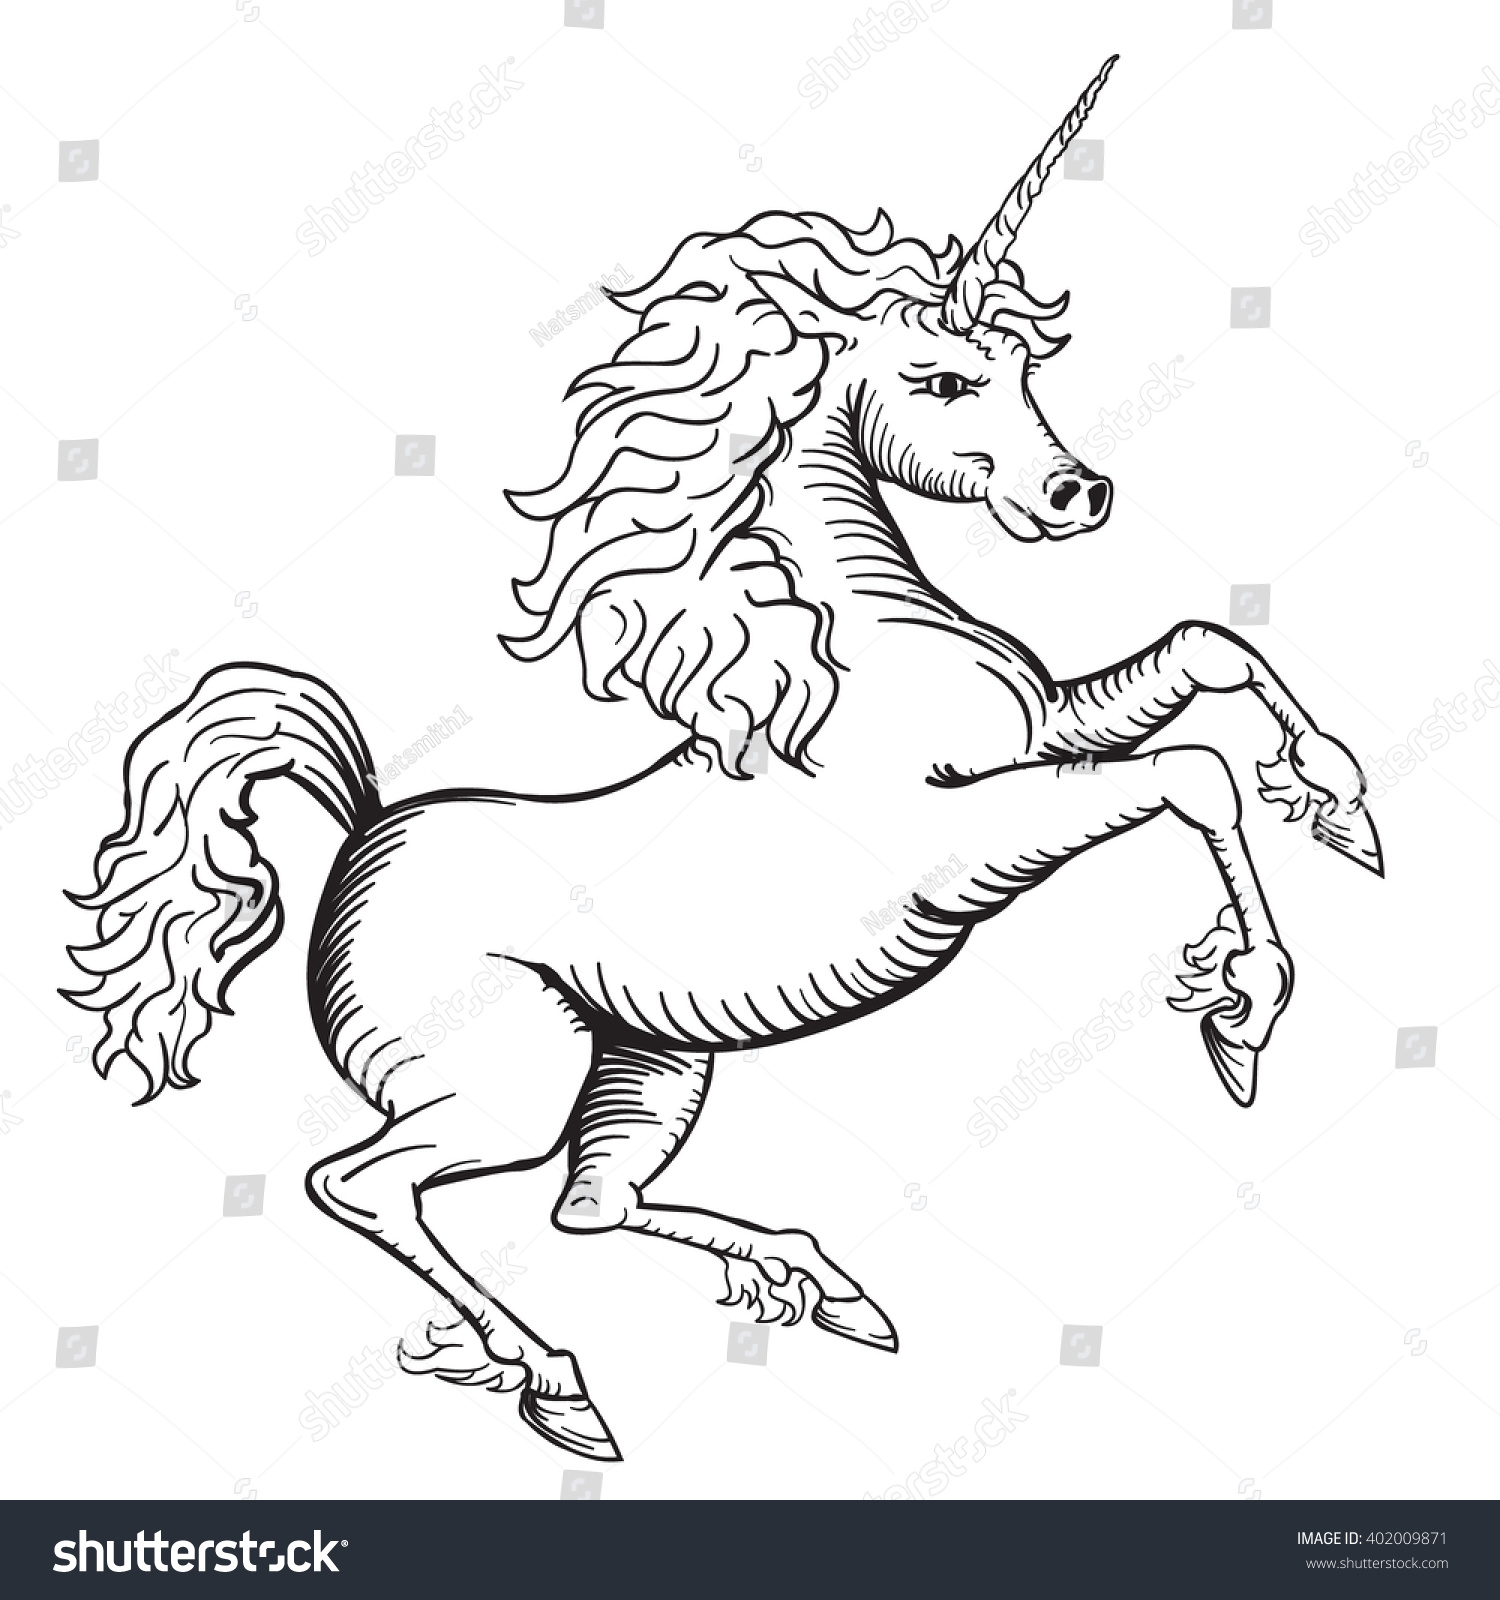 Uncategorized Drawing Of Unicorn black white vector drawing unicorn line stock 402009871 of a easy to edit layers